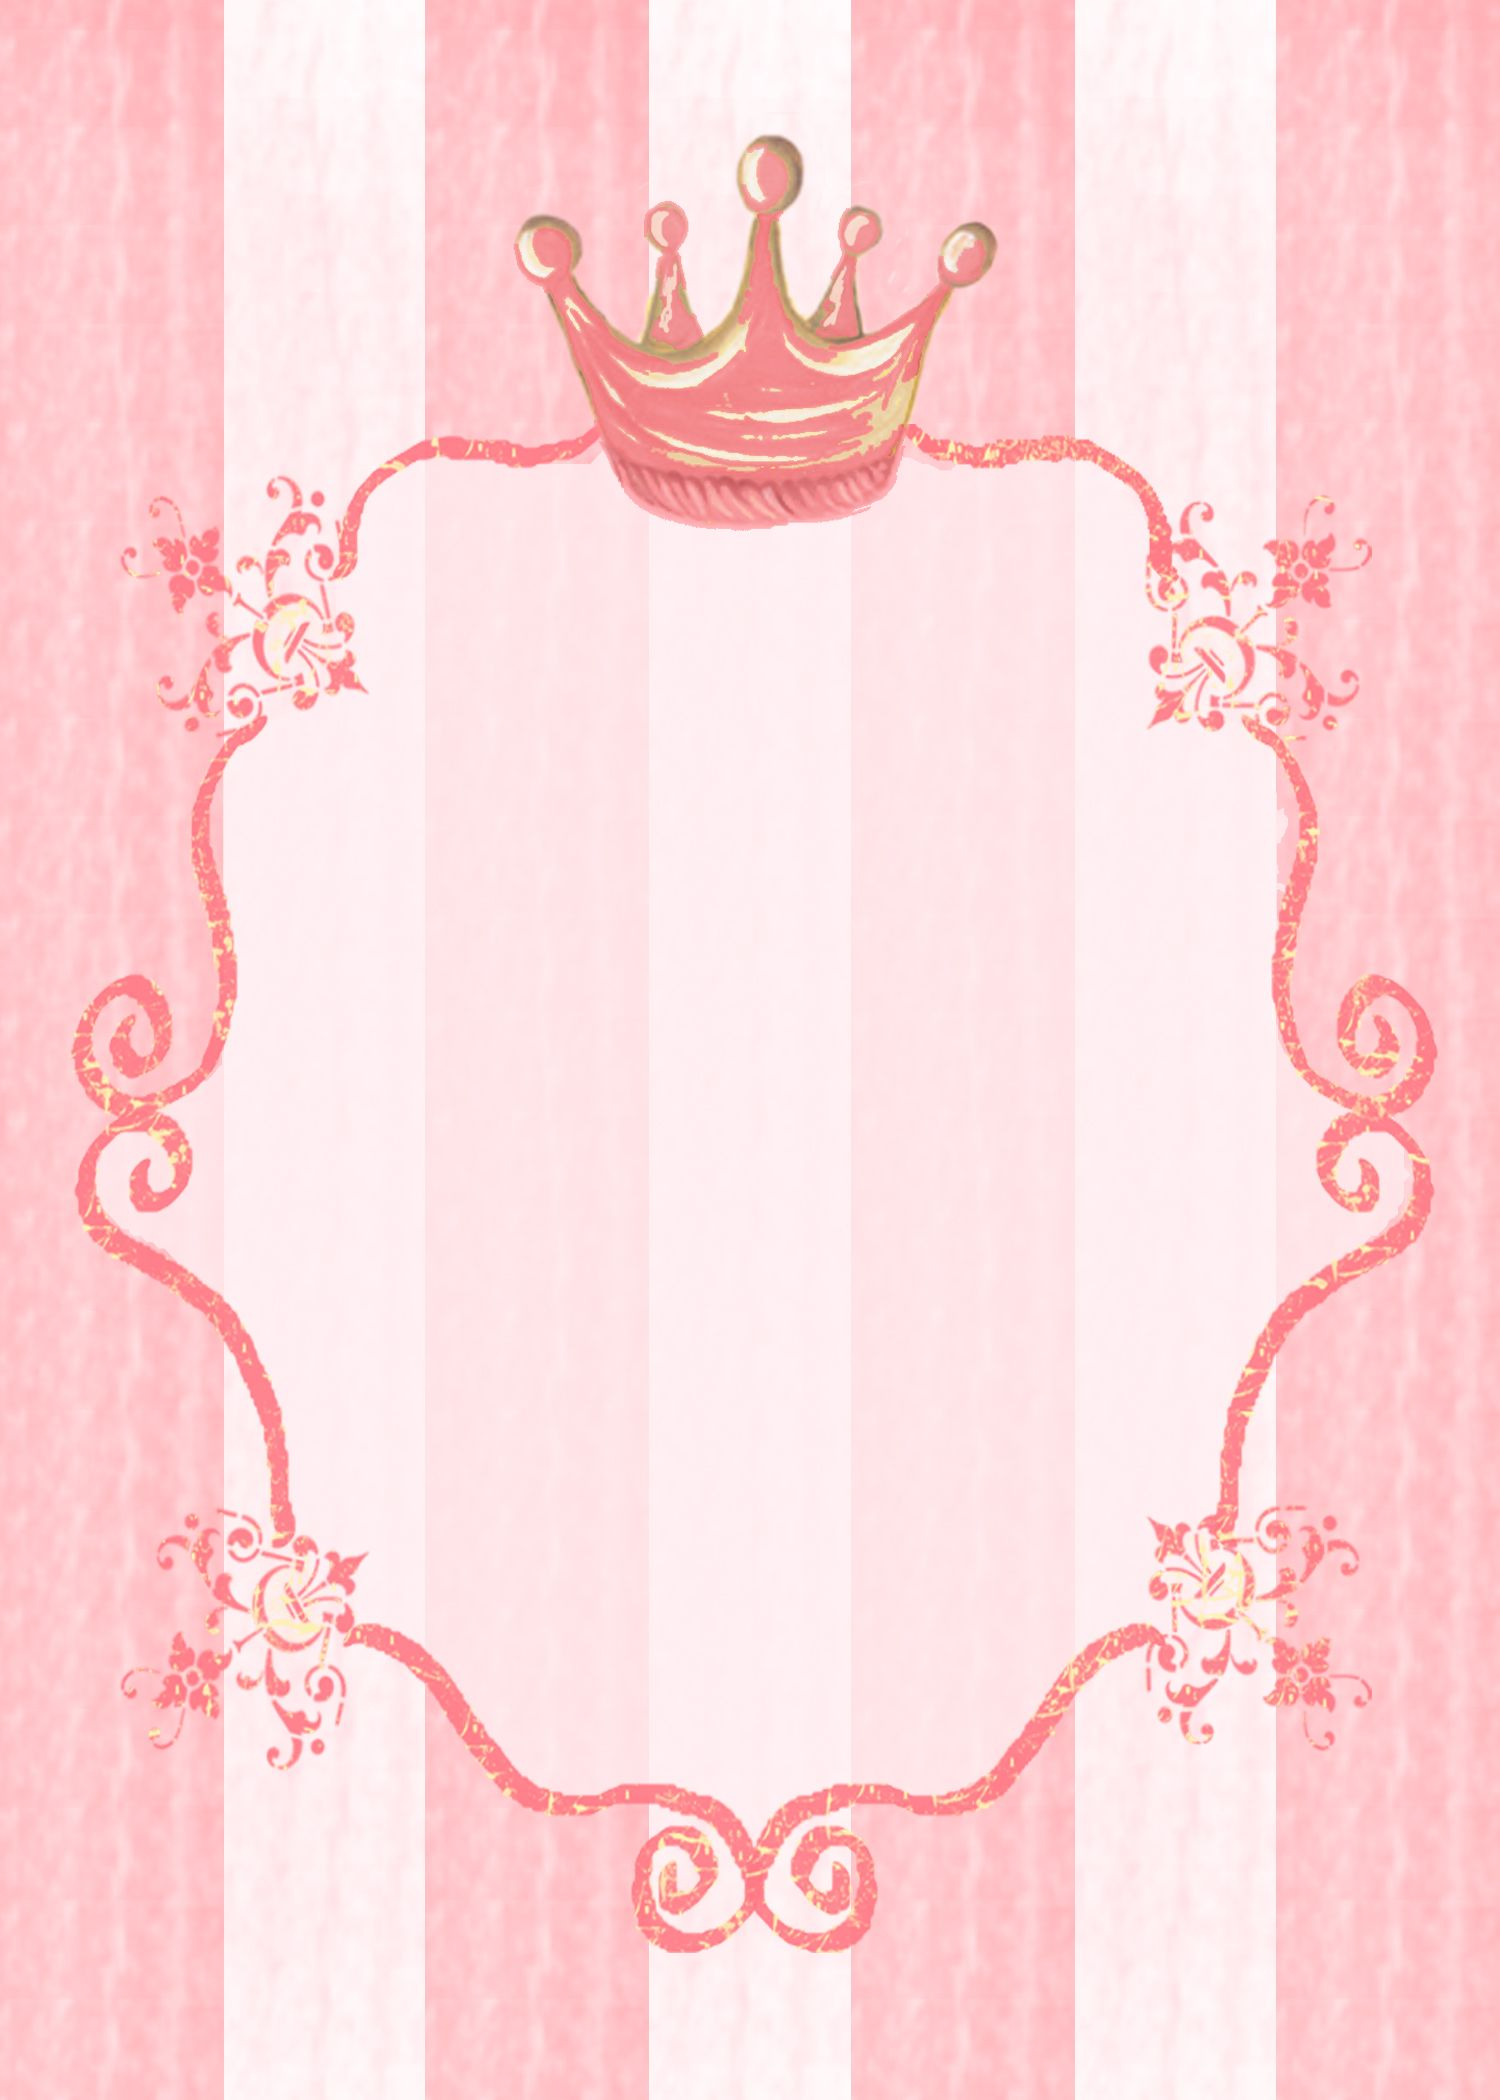 princess party invitation background kids stationery – Birthday Invitation Background